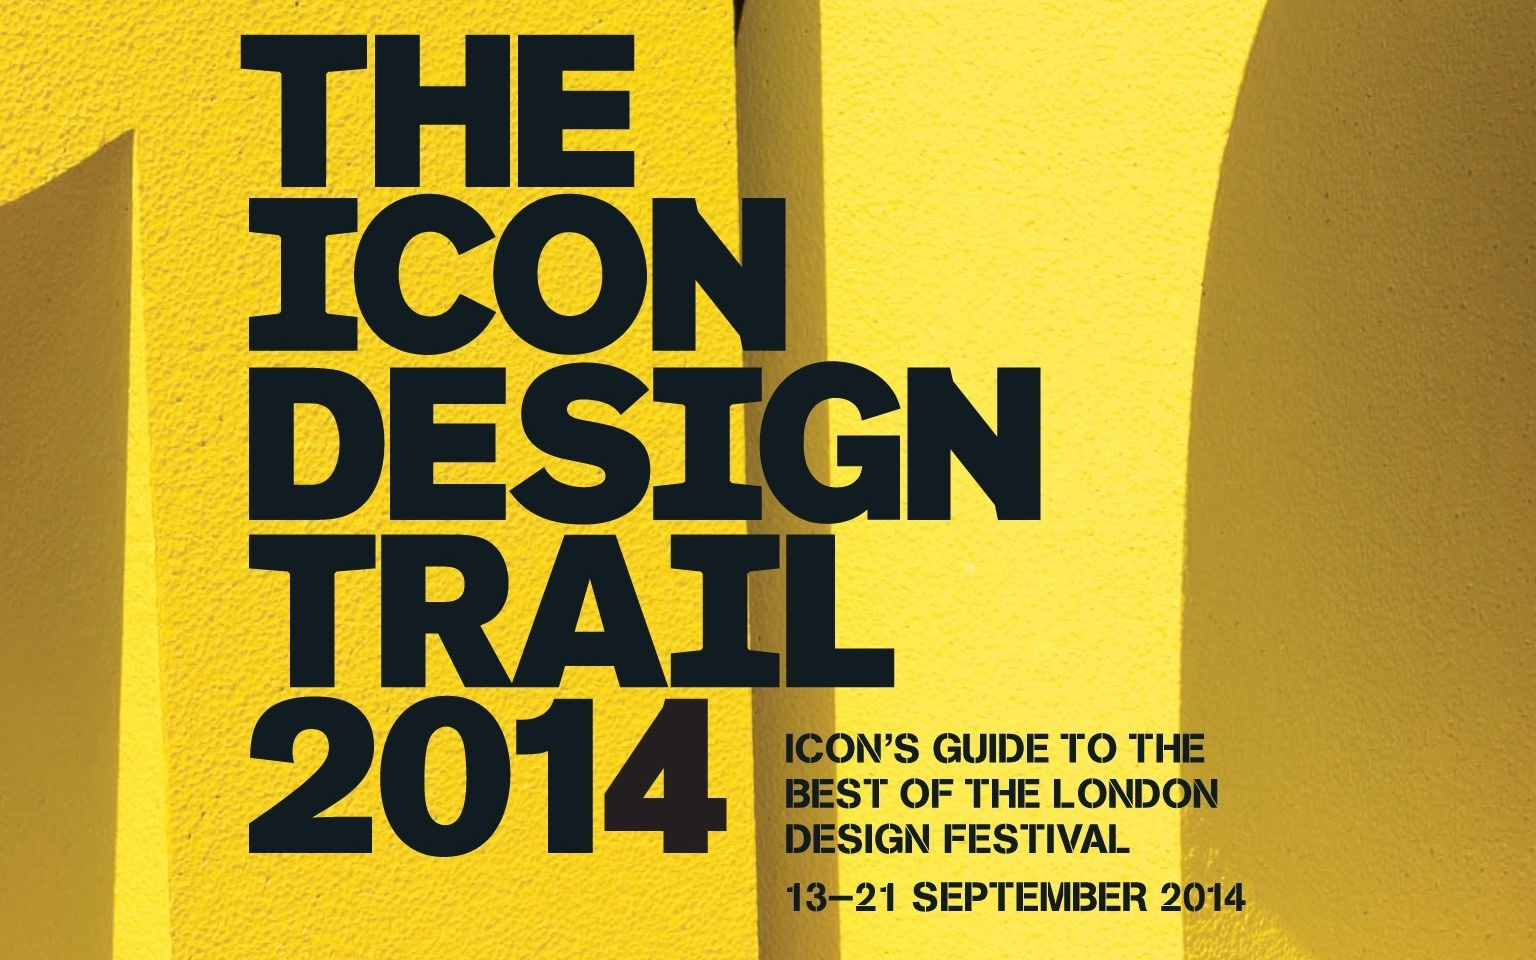 The Icon Design Trail - Genuine produced geo-specific, hyperlocal digital marketing through The Icon Design Trail. This low budget high impact strategy enabled Campari to deliver for their key accounts as a major part of the London Design Festival, featuring local bars and restaurant profiles & cocktail recipes in restaurants within a cutting-edge, forward thinking events and show calendar used by a key and influential demographic.